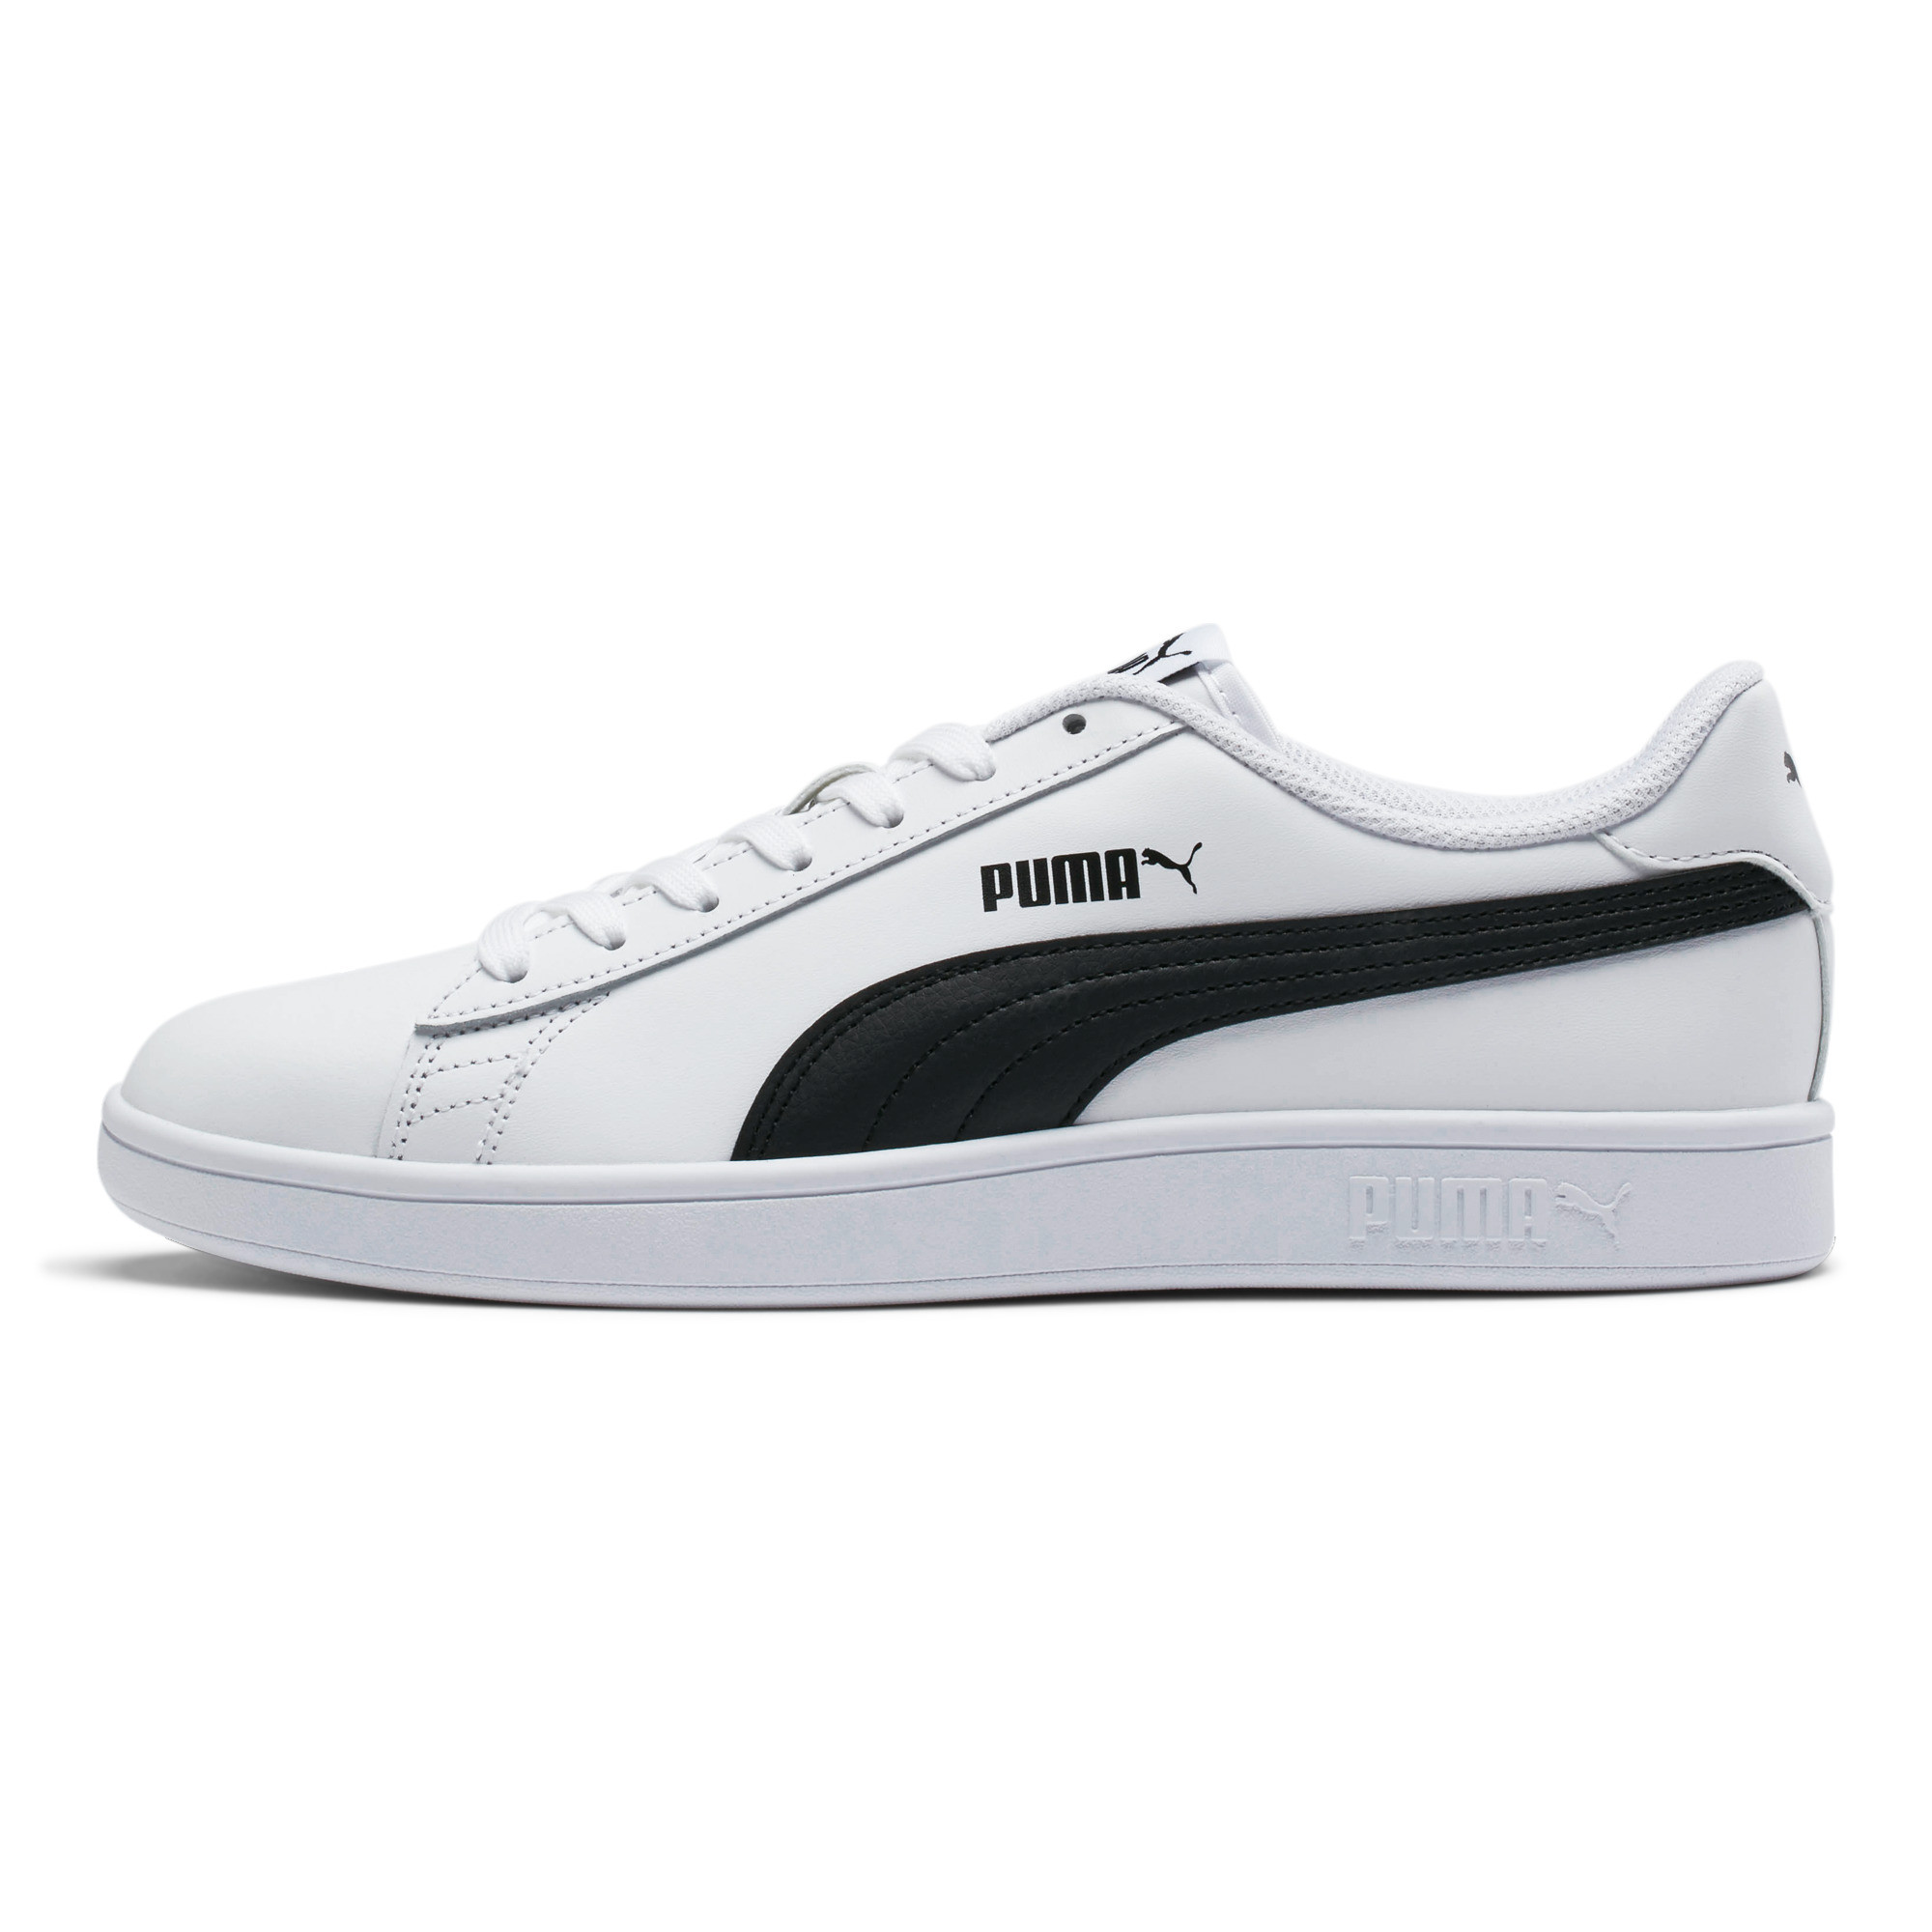 PUMA-PUMA-Smash-v2-Men-039-s-Sneakers-Men-Shoe-Basics miniatura 19